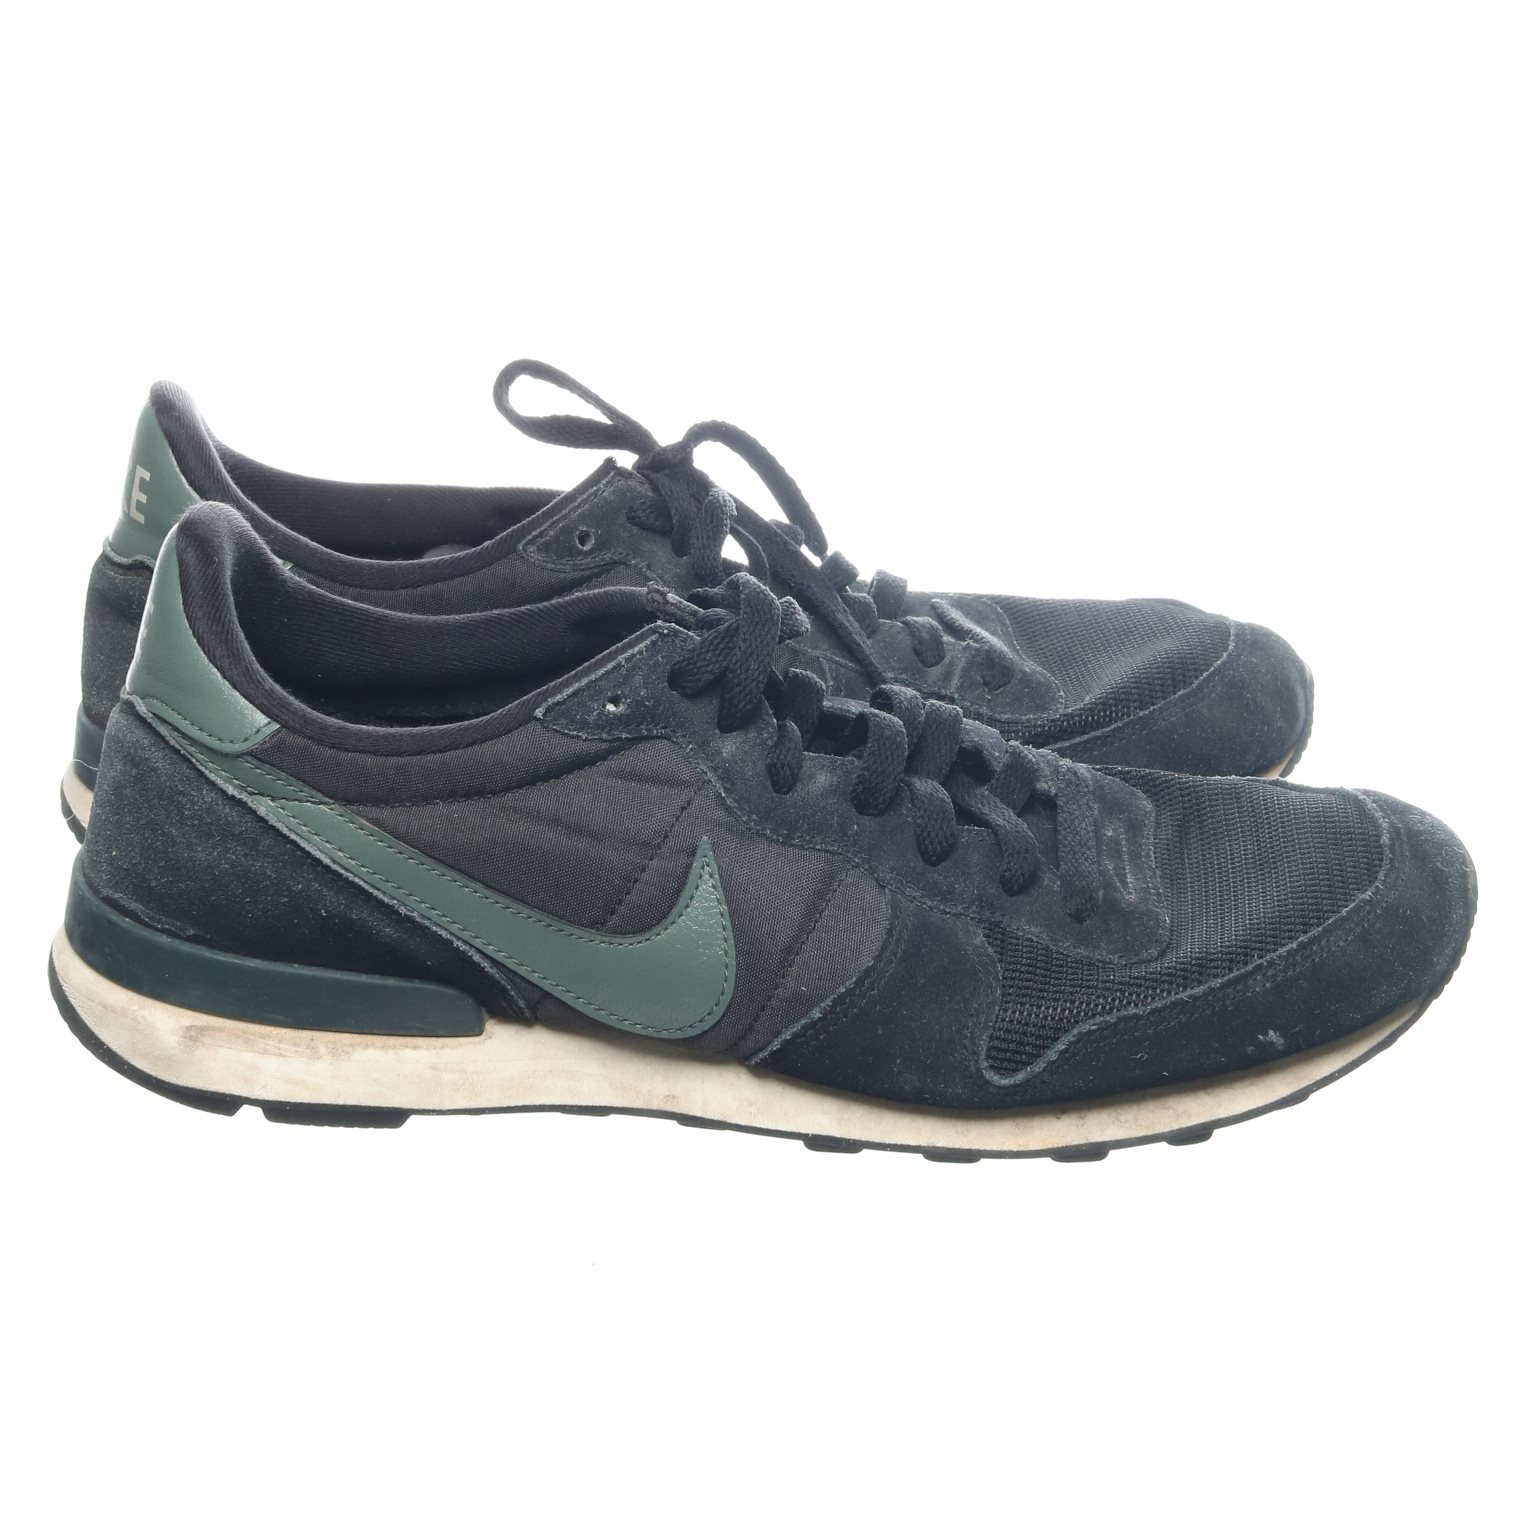 huge discount c406b acd33 nike internationalist sneakers dame vegas gull sail rocky tan svart nike  dame  nike sneakers strl 45 nike internationalist svart